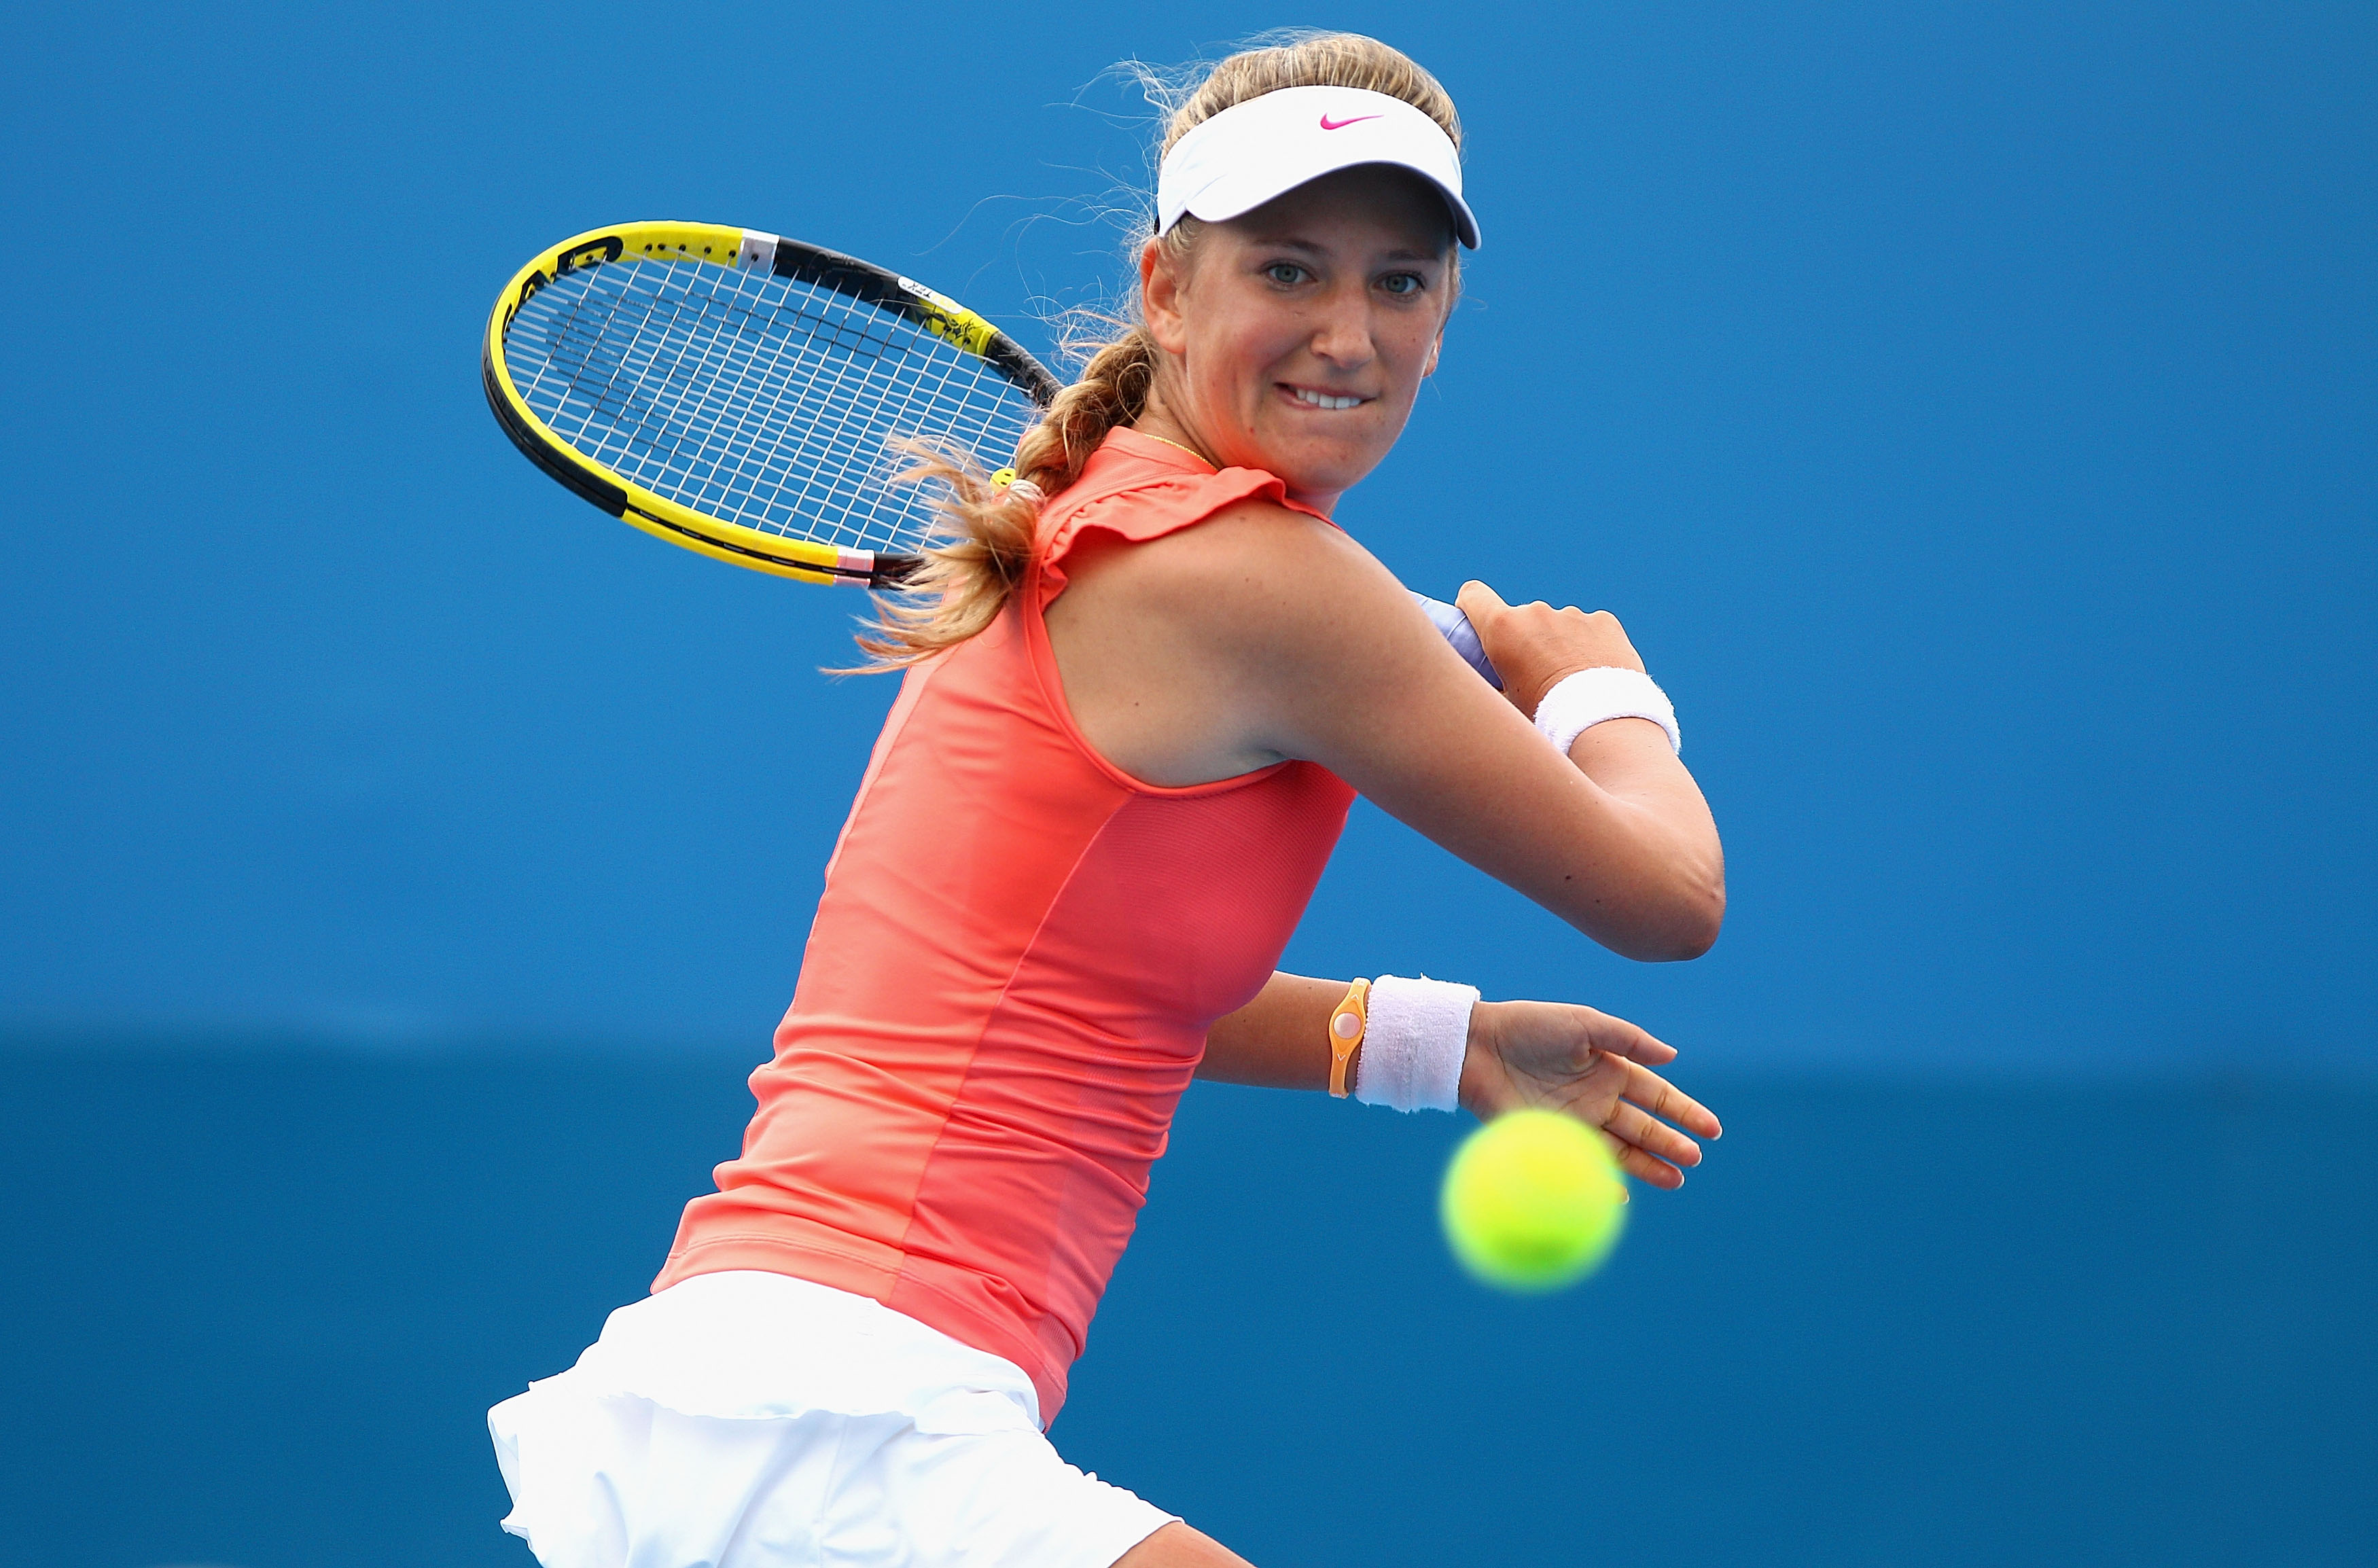 SYDNEY, AUSTRALIA - JANUARY 11: Victoria Azarenka of Belarus hits a backhand during her match against Shahar Peer of Israel during day three of the 2011 Medibank International at Sydney Olympic Park Tennis Centre on January 11, 2011 in Sydney, Australia.